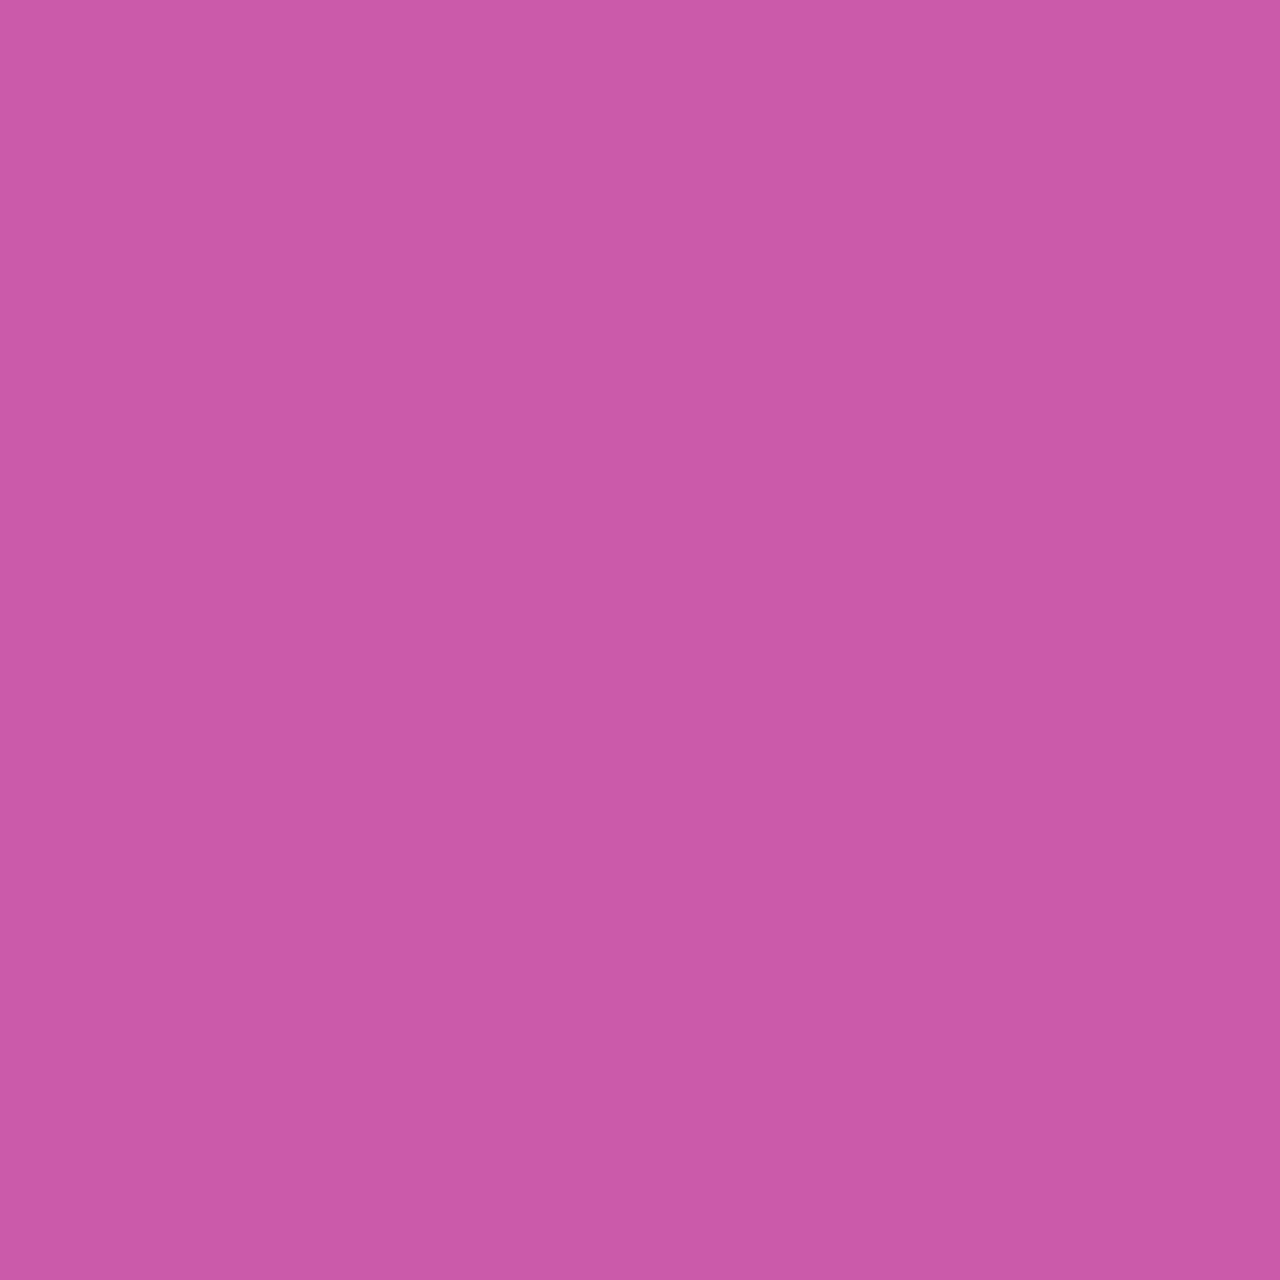 #0044 Rosco Gels Roscolux Middle Rose, 20x24